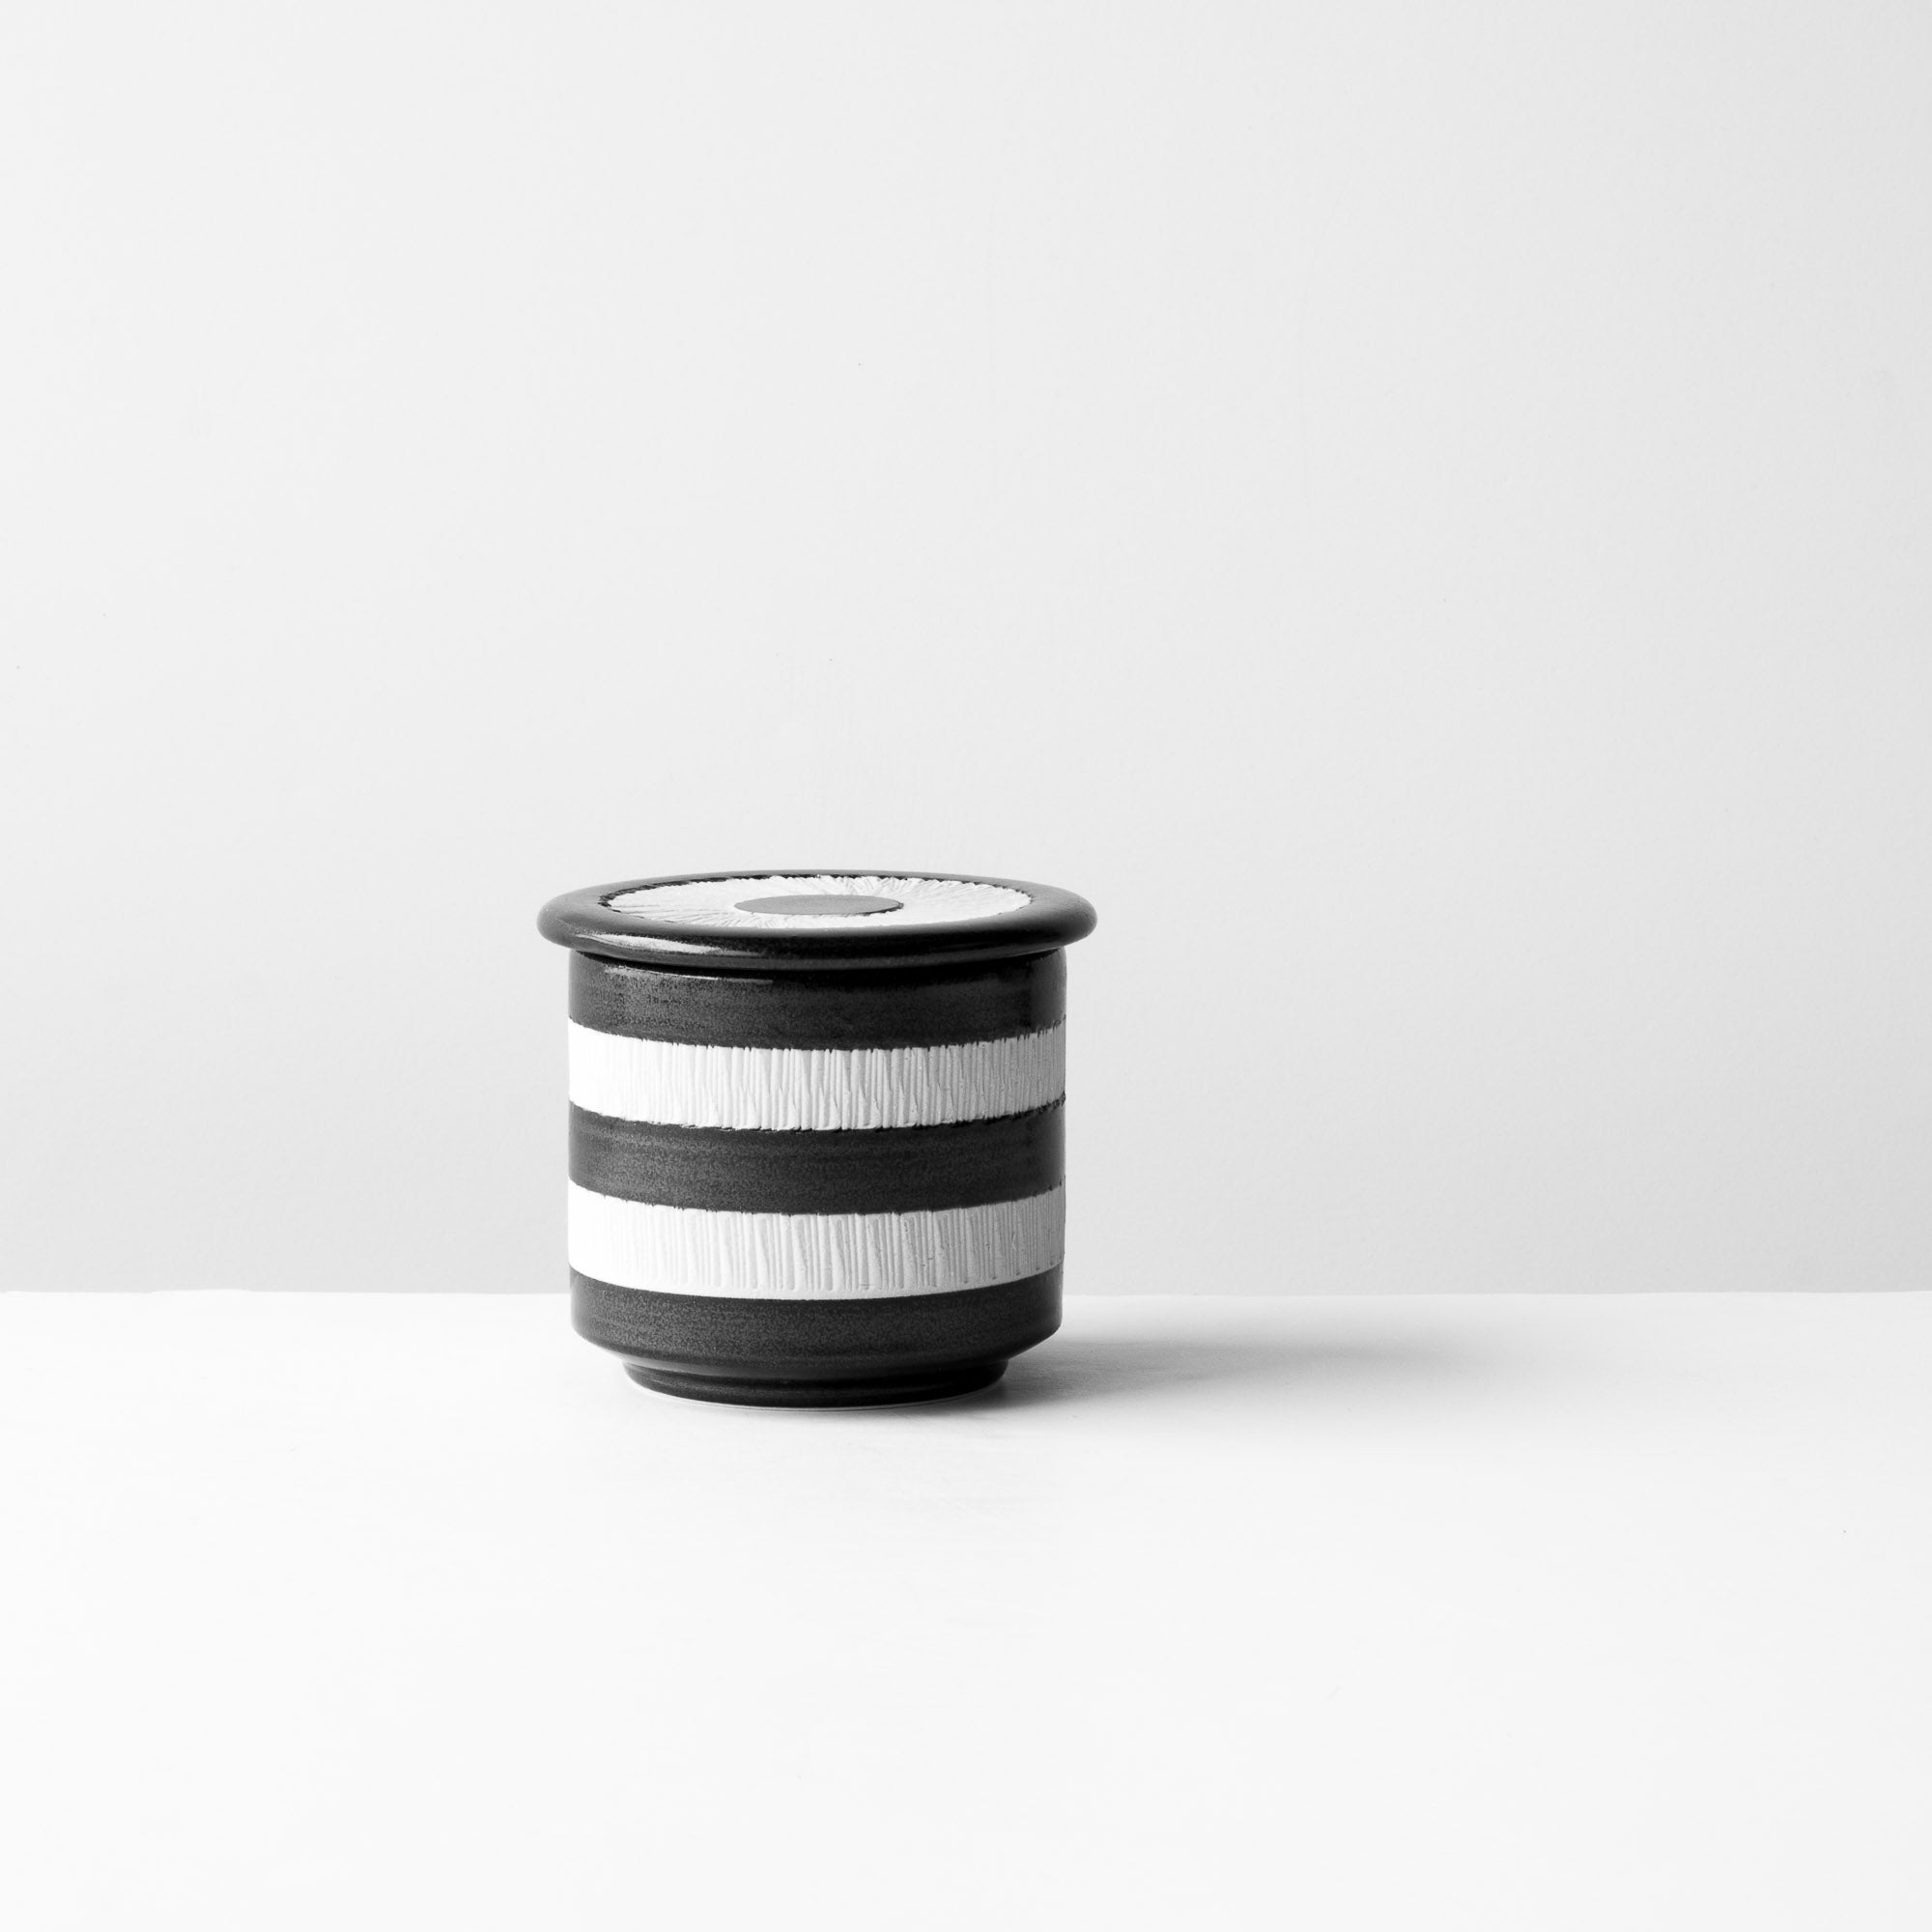 Black & White Handmade Porcelain Ceramic Salt Cellar - Sold by Chic & Basta